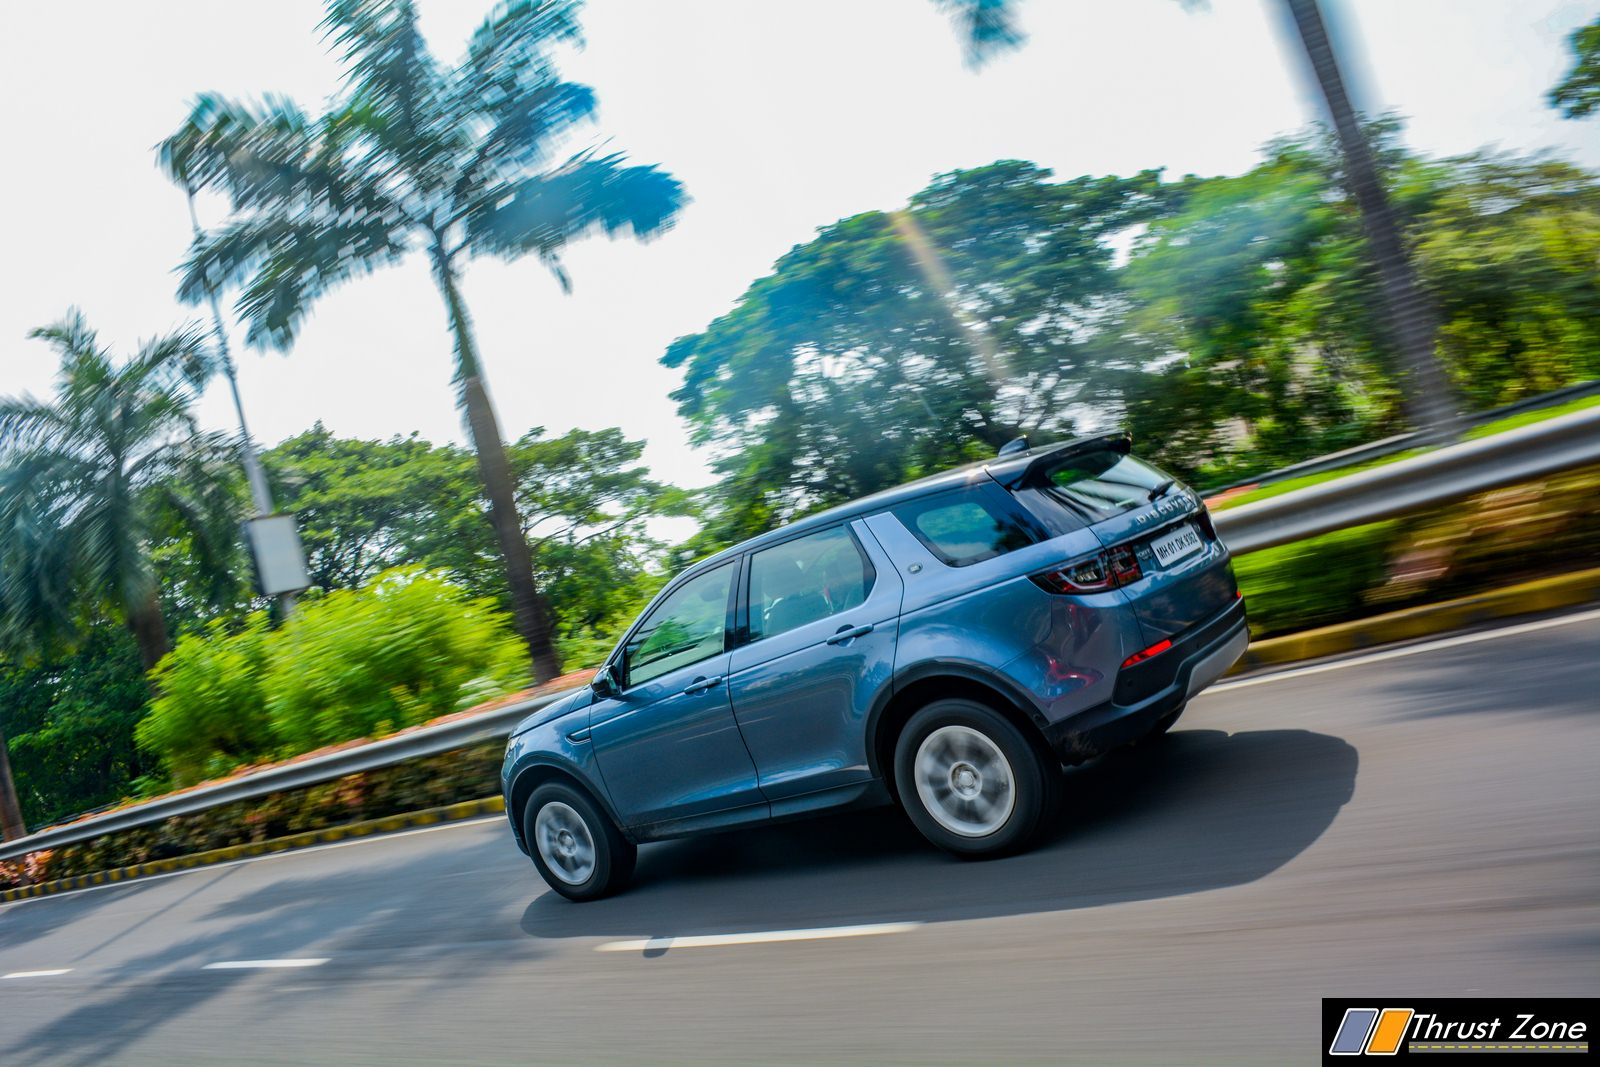 2020-Land-Rover-Discovery-Diesel-India-Review-18